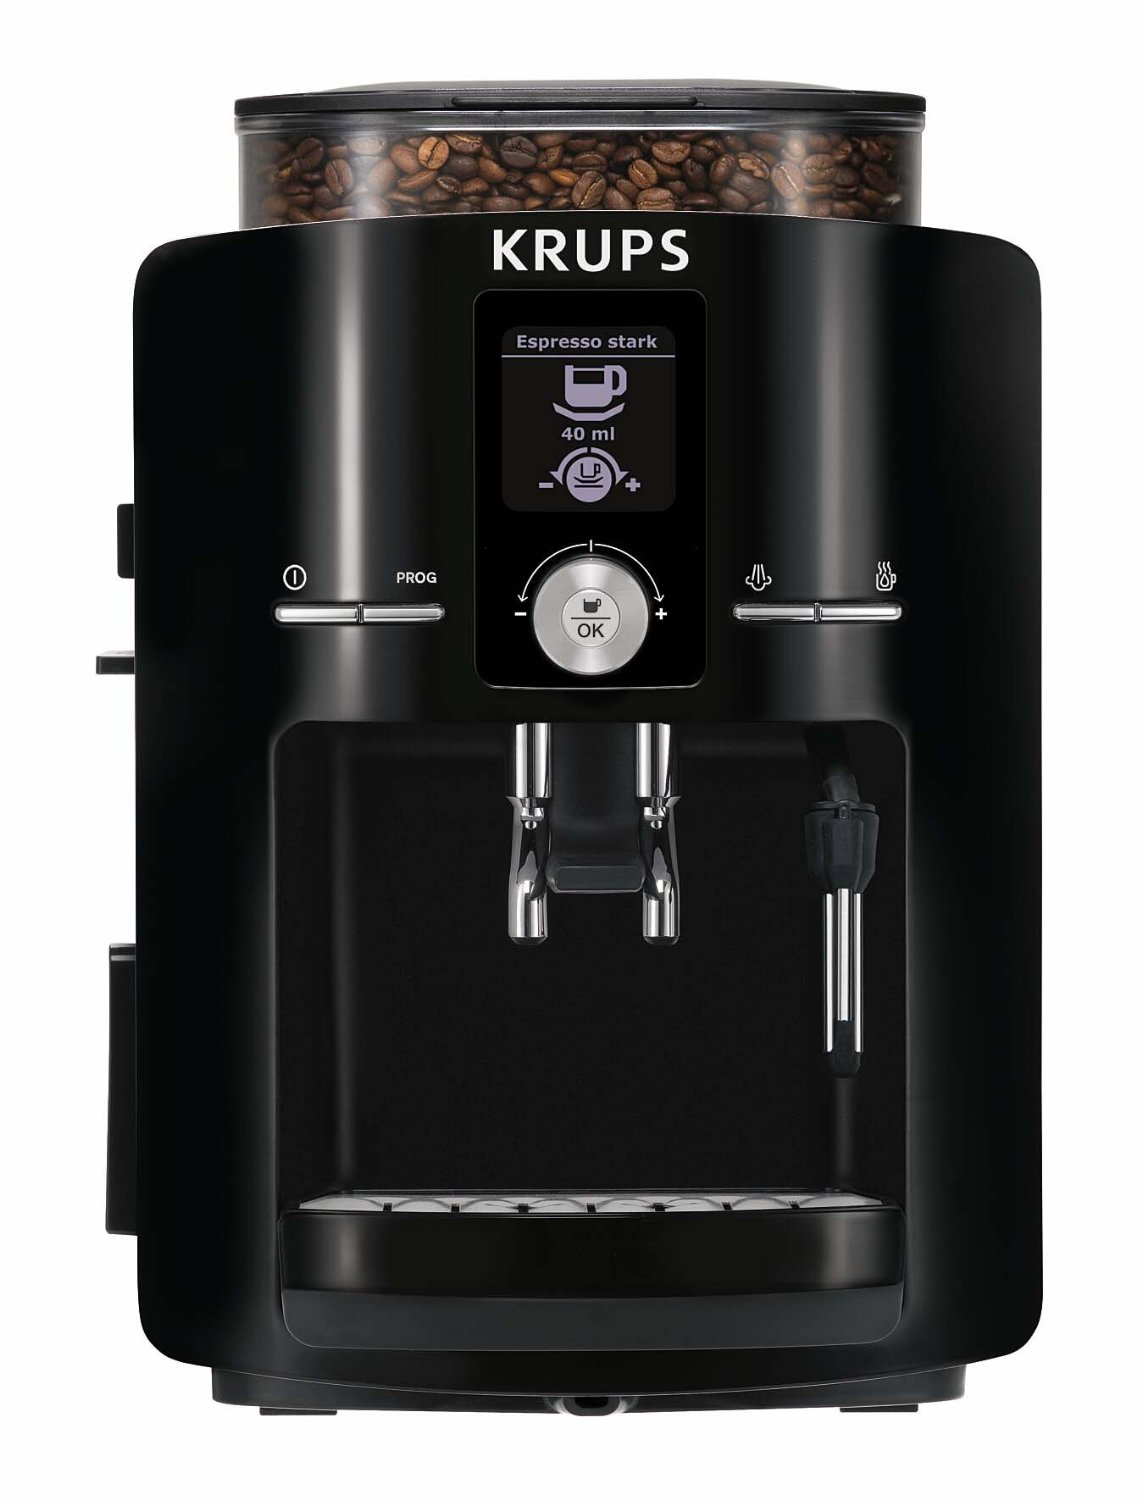 the krups espresso machine home espresso machine. Black Bedroom Furniture Sets. Home Design Ideas